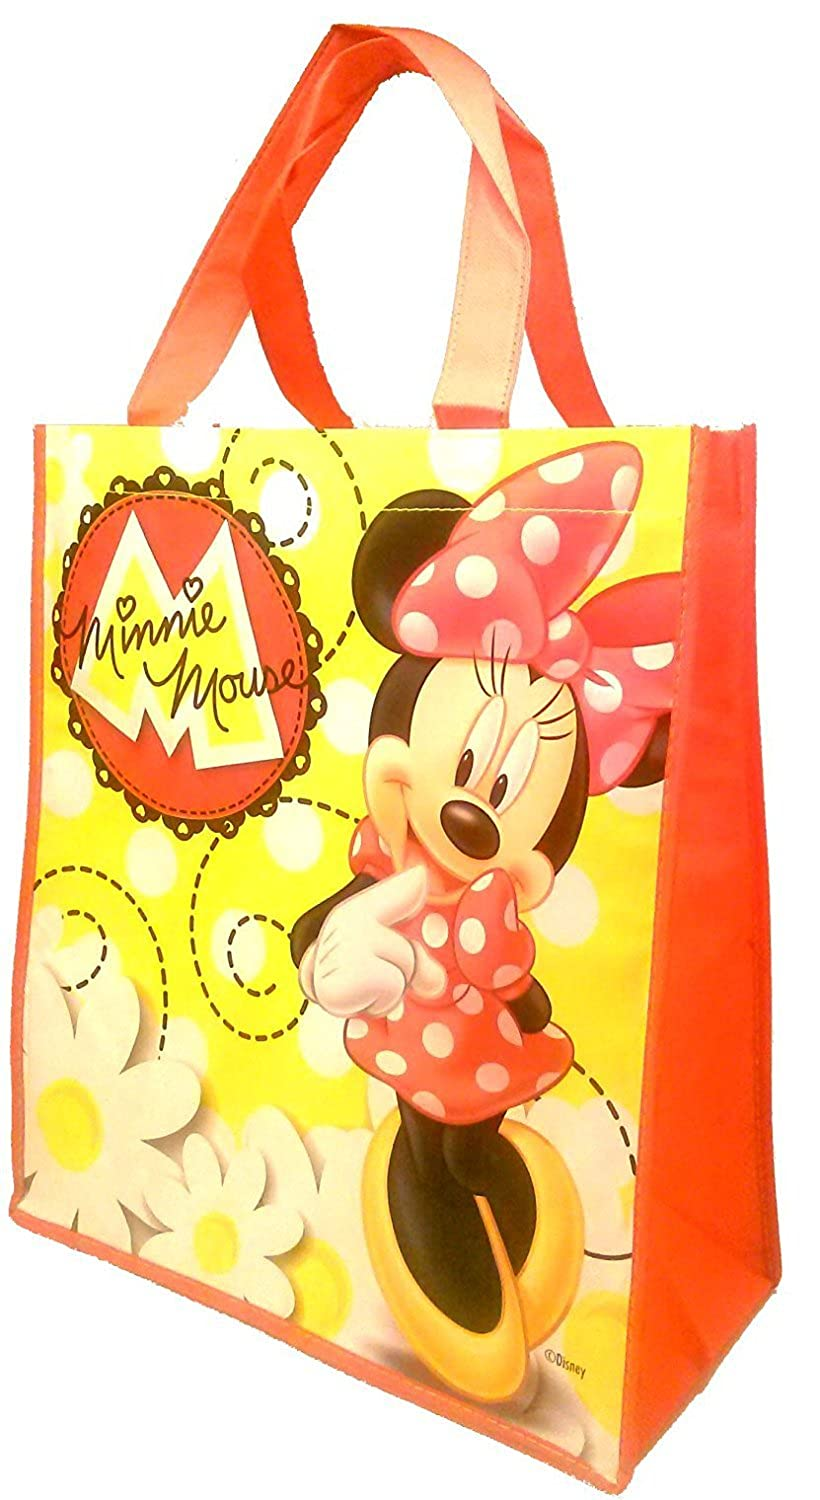 Disney Minnie Mouse Reusable Non-Woven Tote Bag